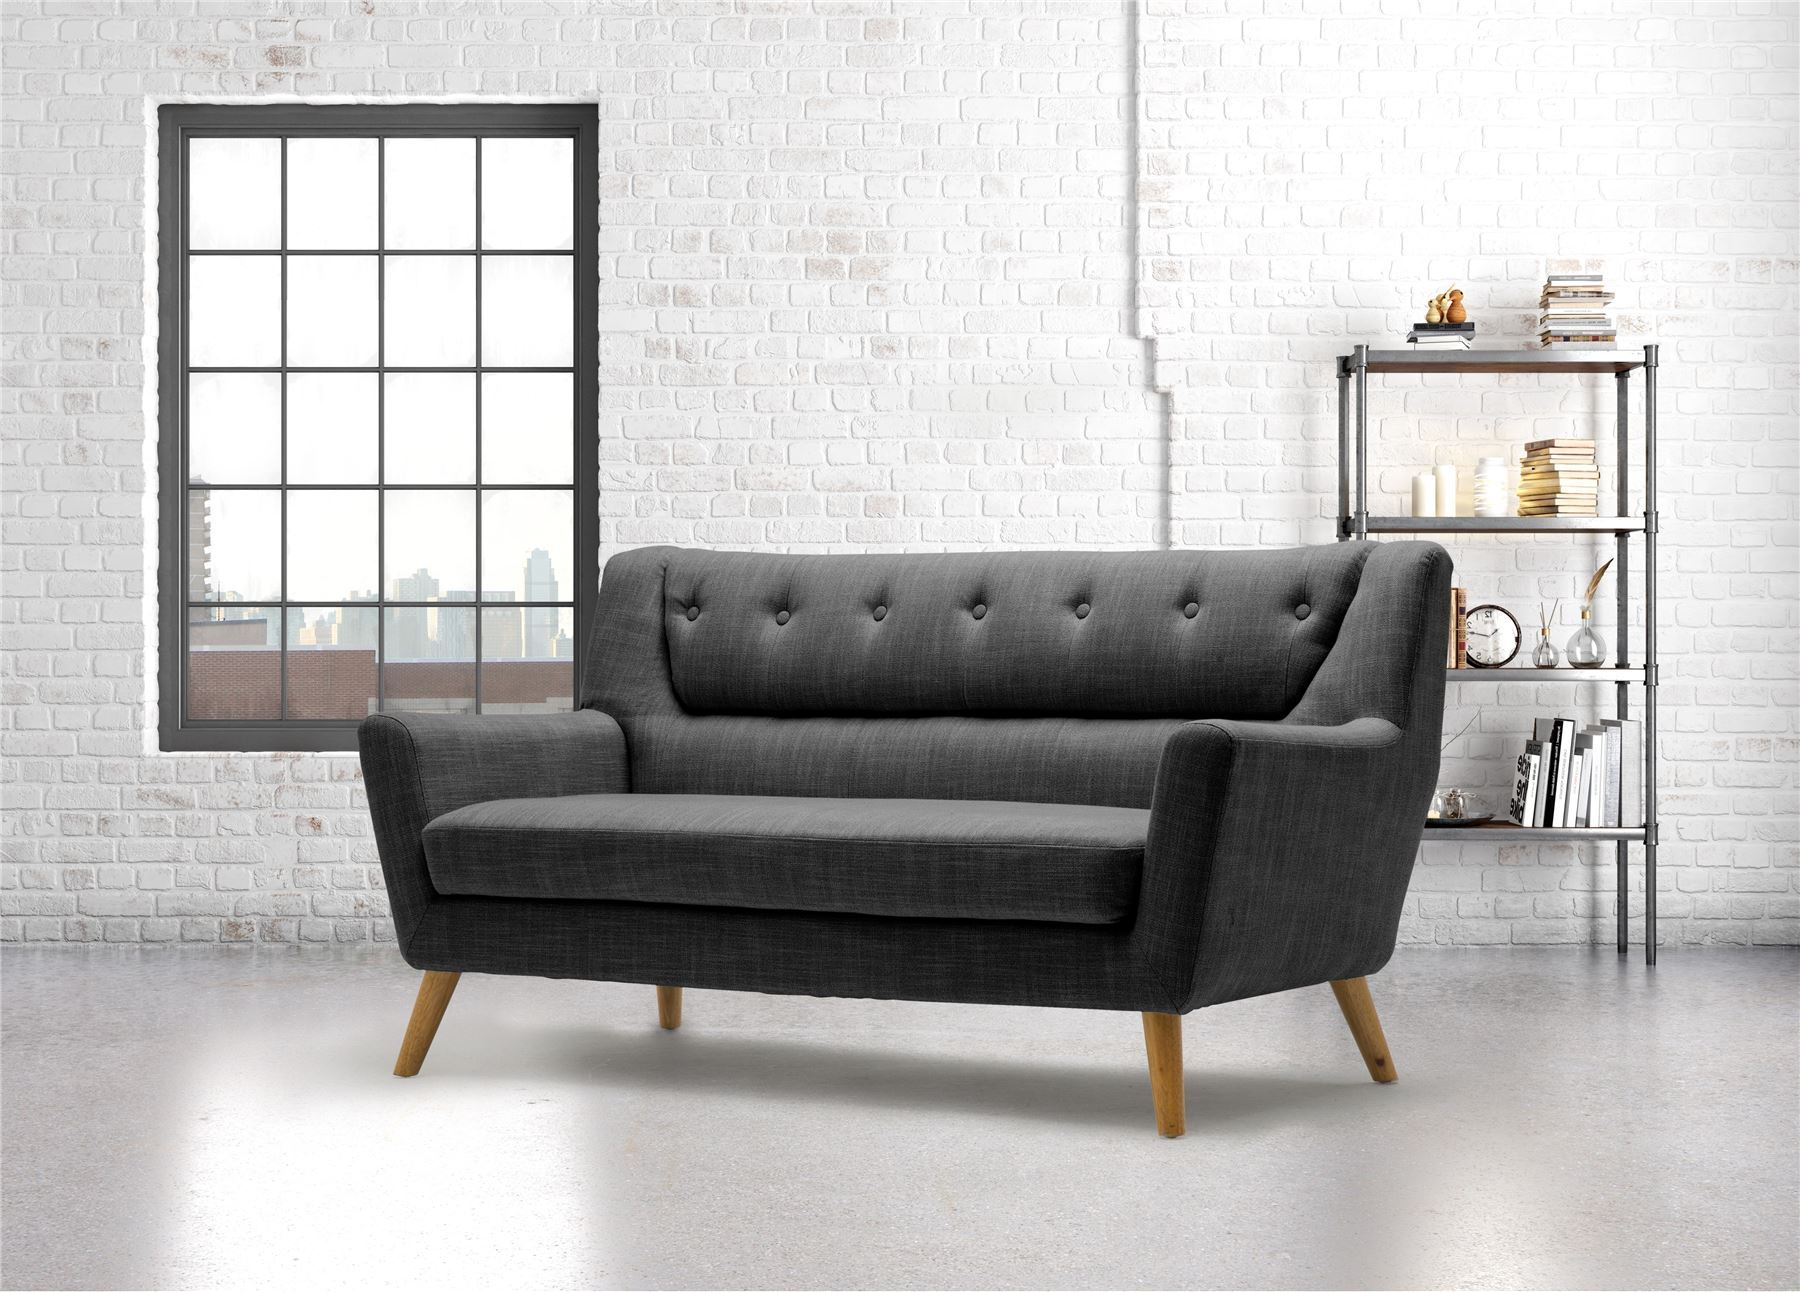 Birlea Lambeth 3 Seater Grey Large Sofa Settee Scandinavian Modern Retro